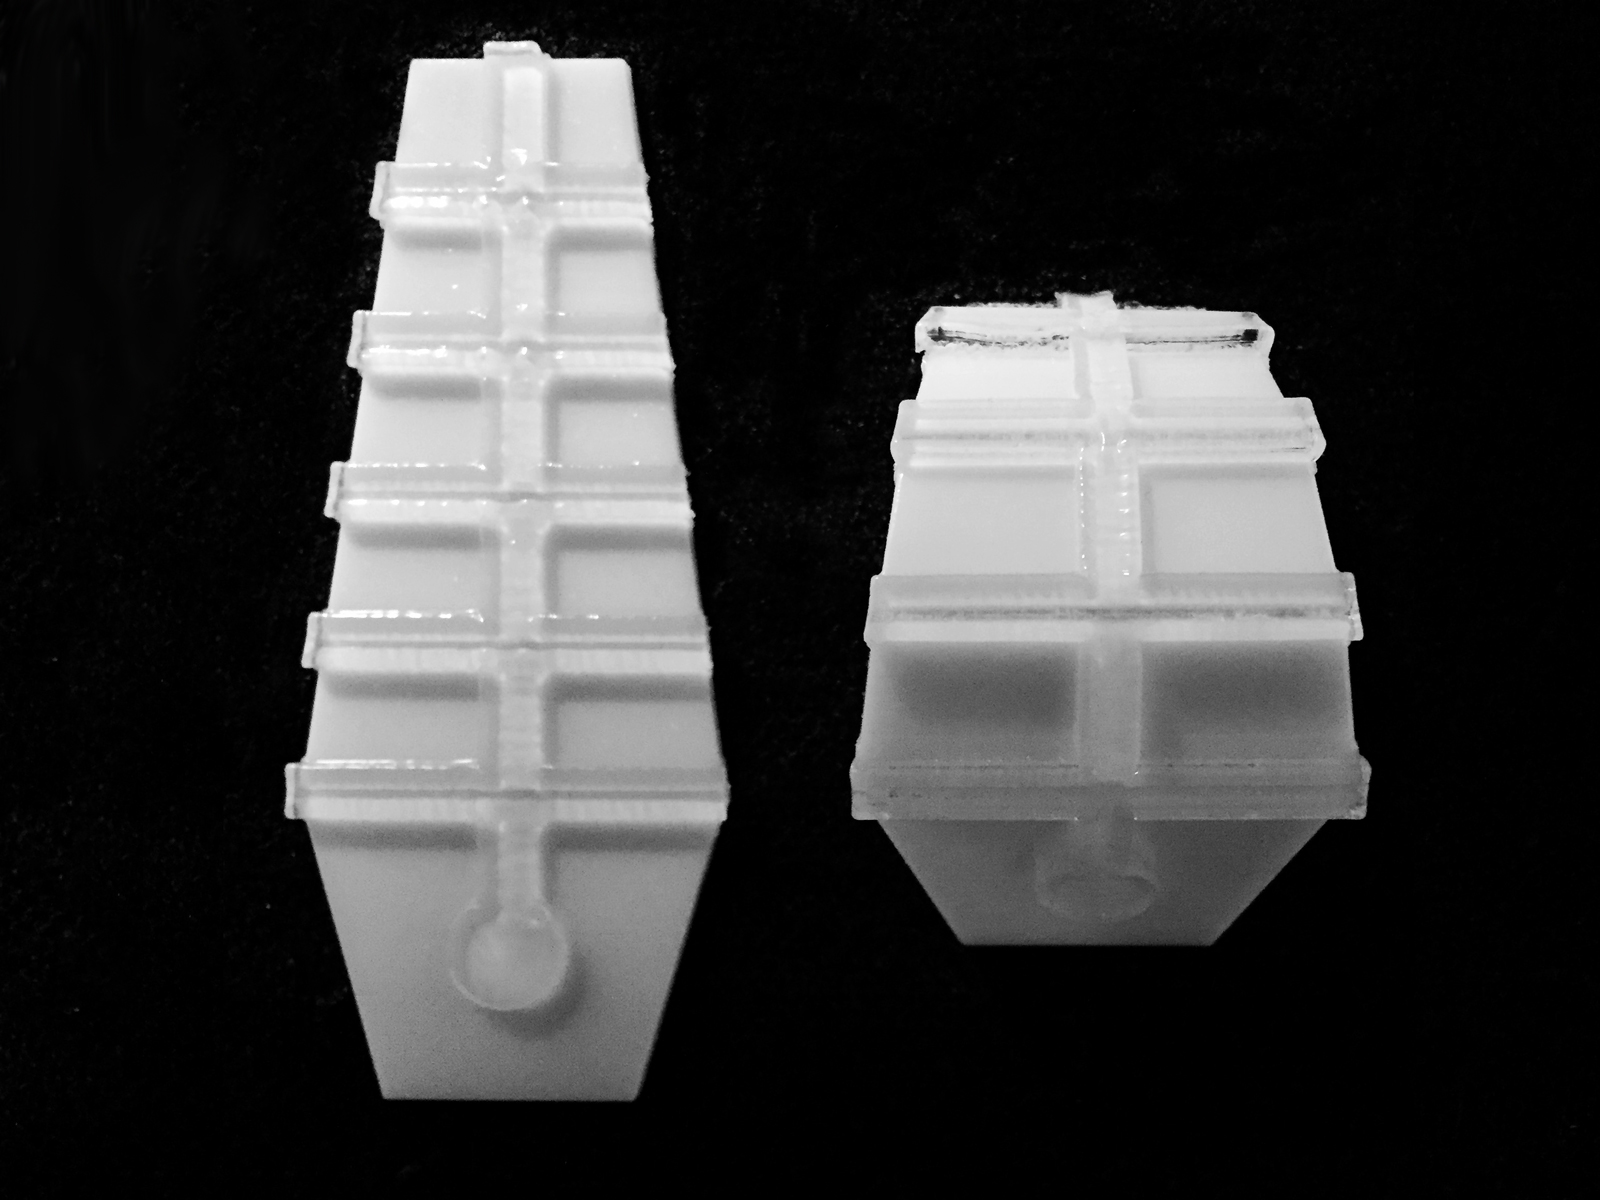 3D printed swellable polymer fins